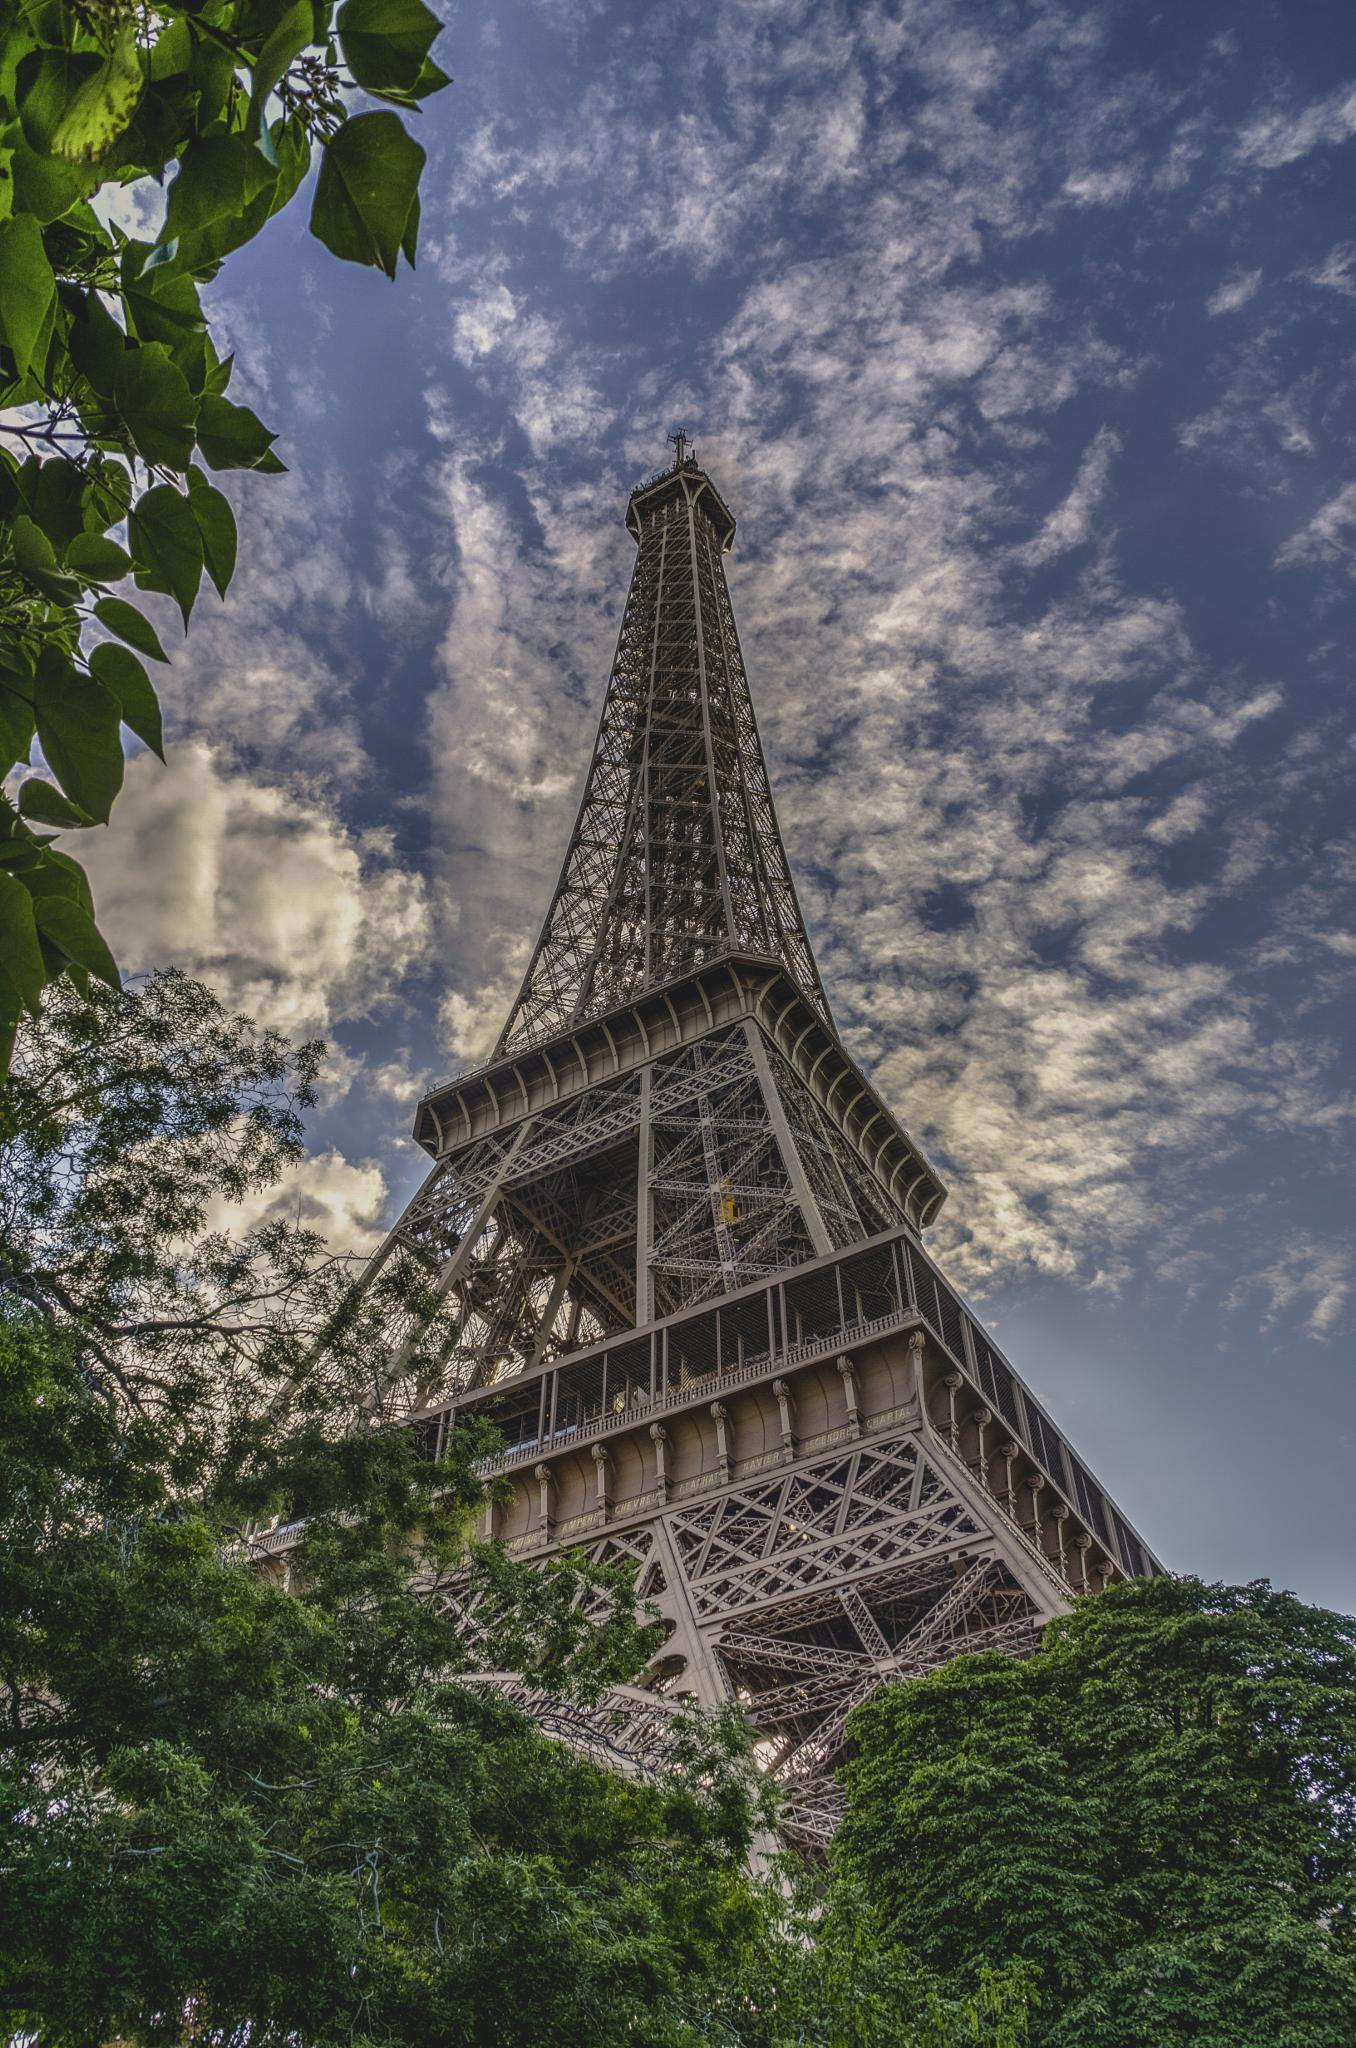 The Eiffel Tower by andinegerard